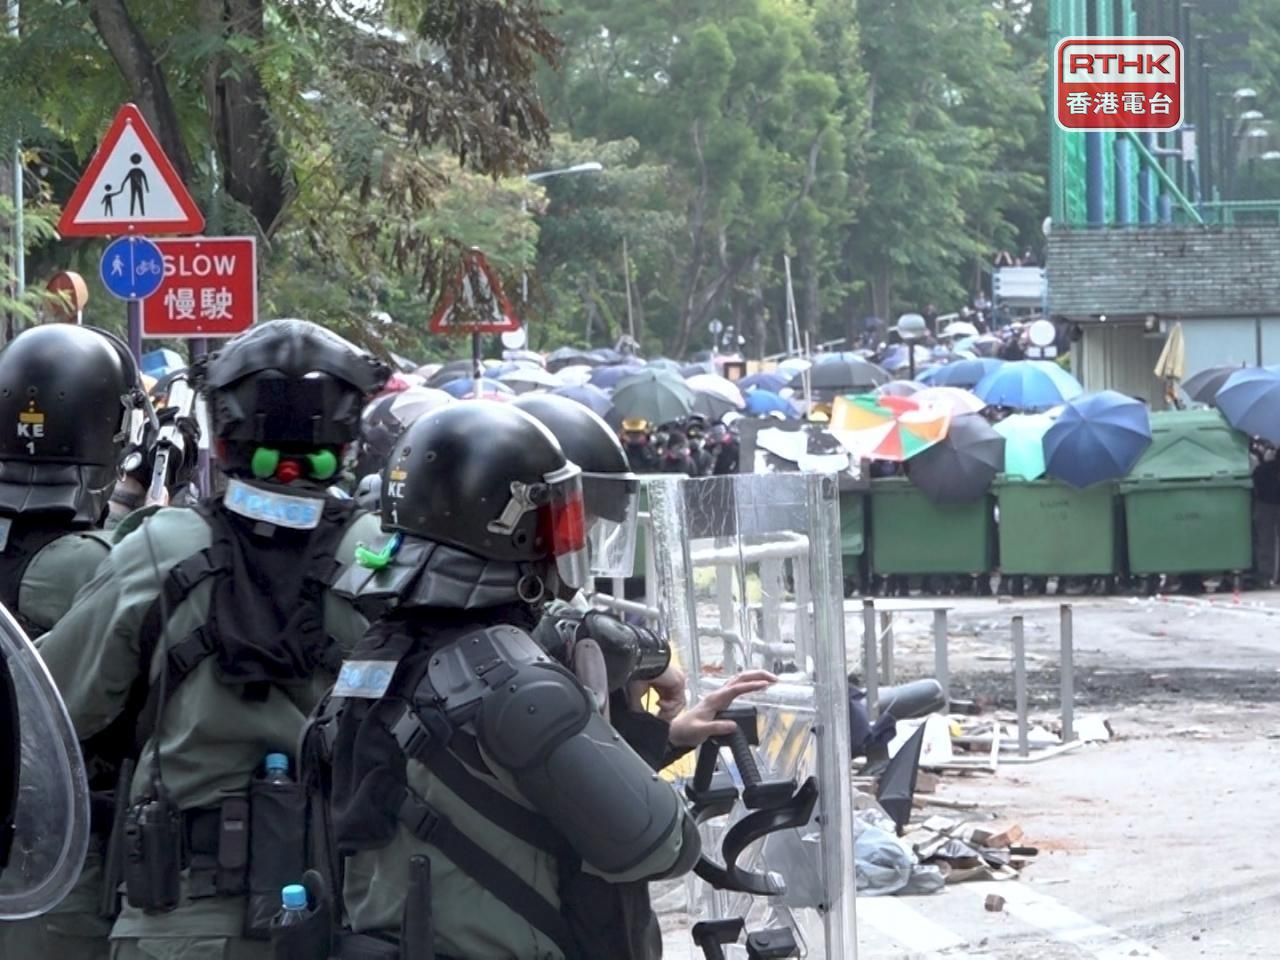 Five students found guilty of rioting at CUHK